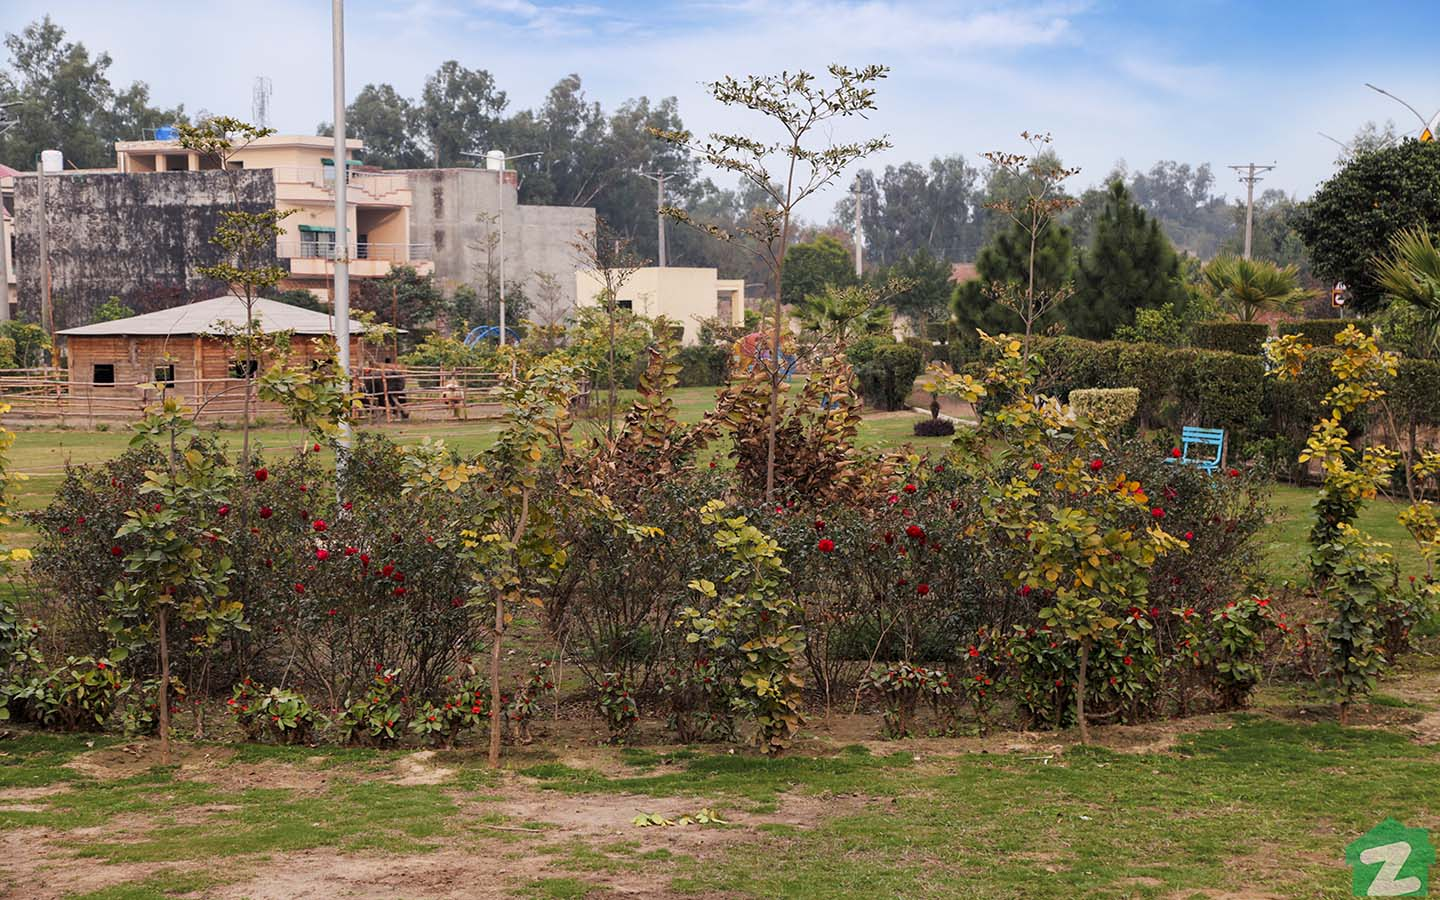 parks in SA Gardens Lahore